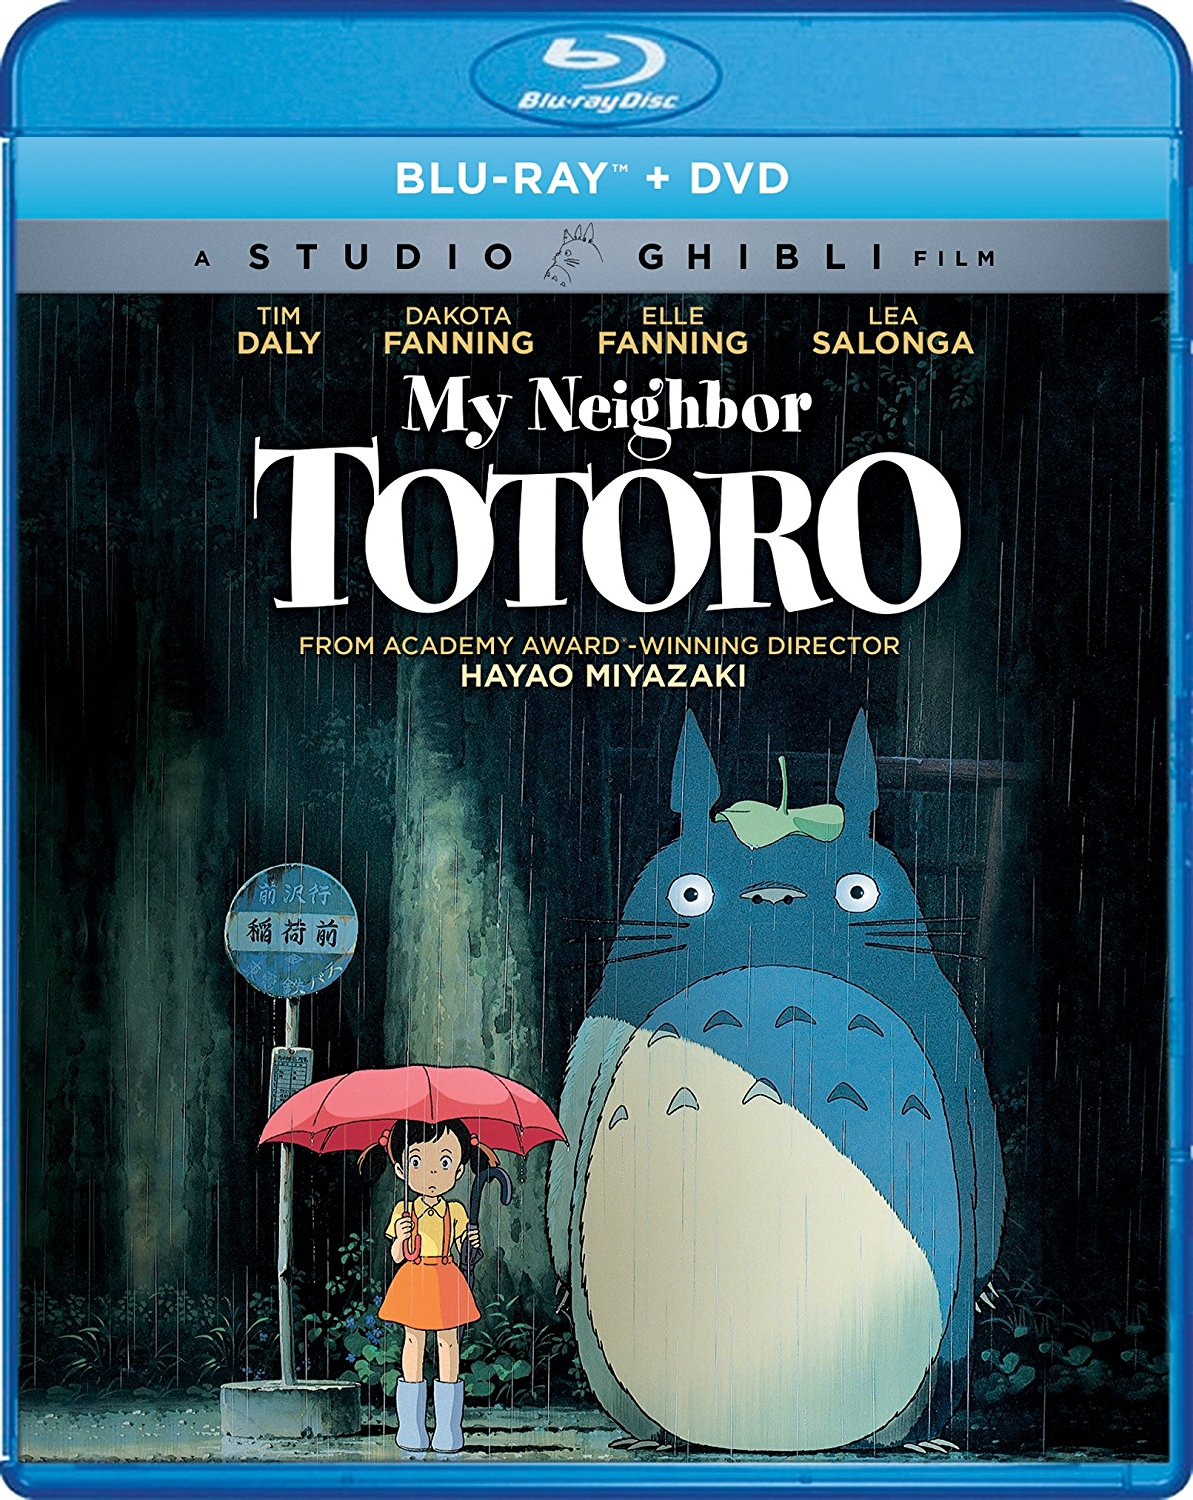 My Neighbor Totoro Blu-ray/DVD 826663181449